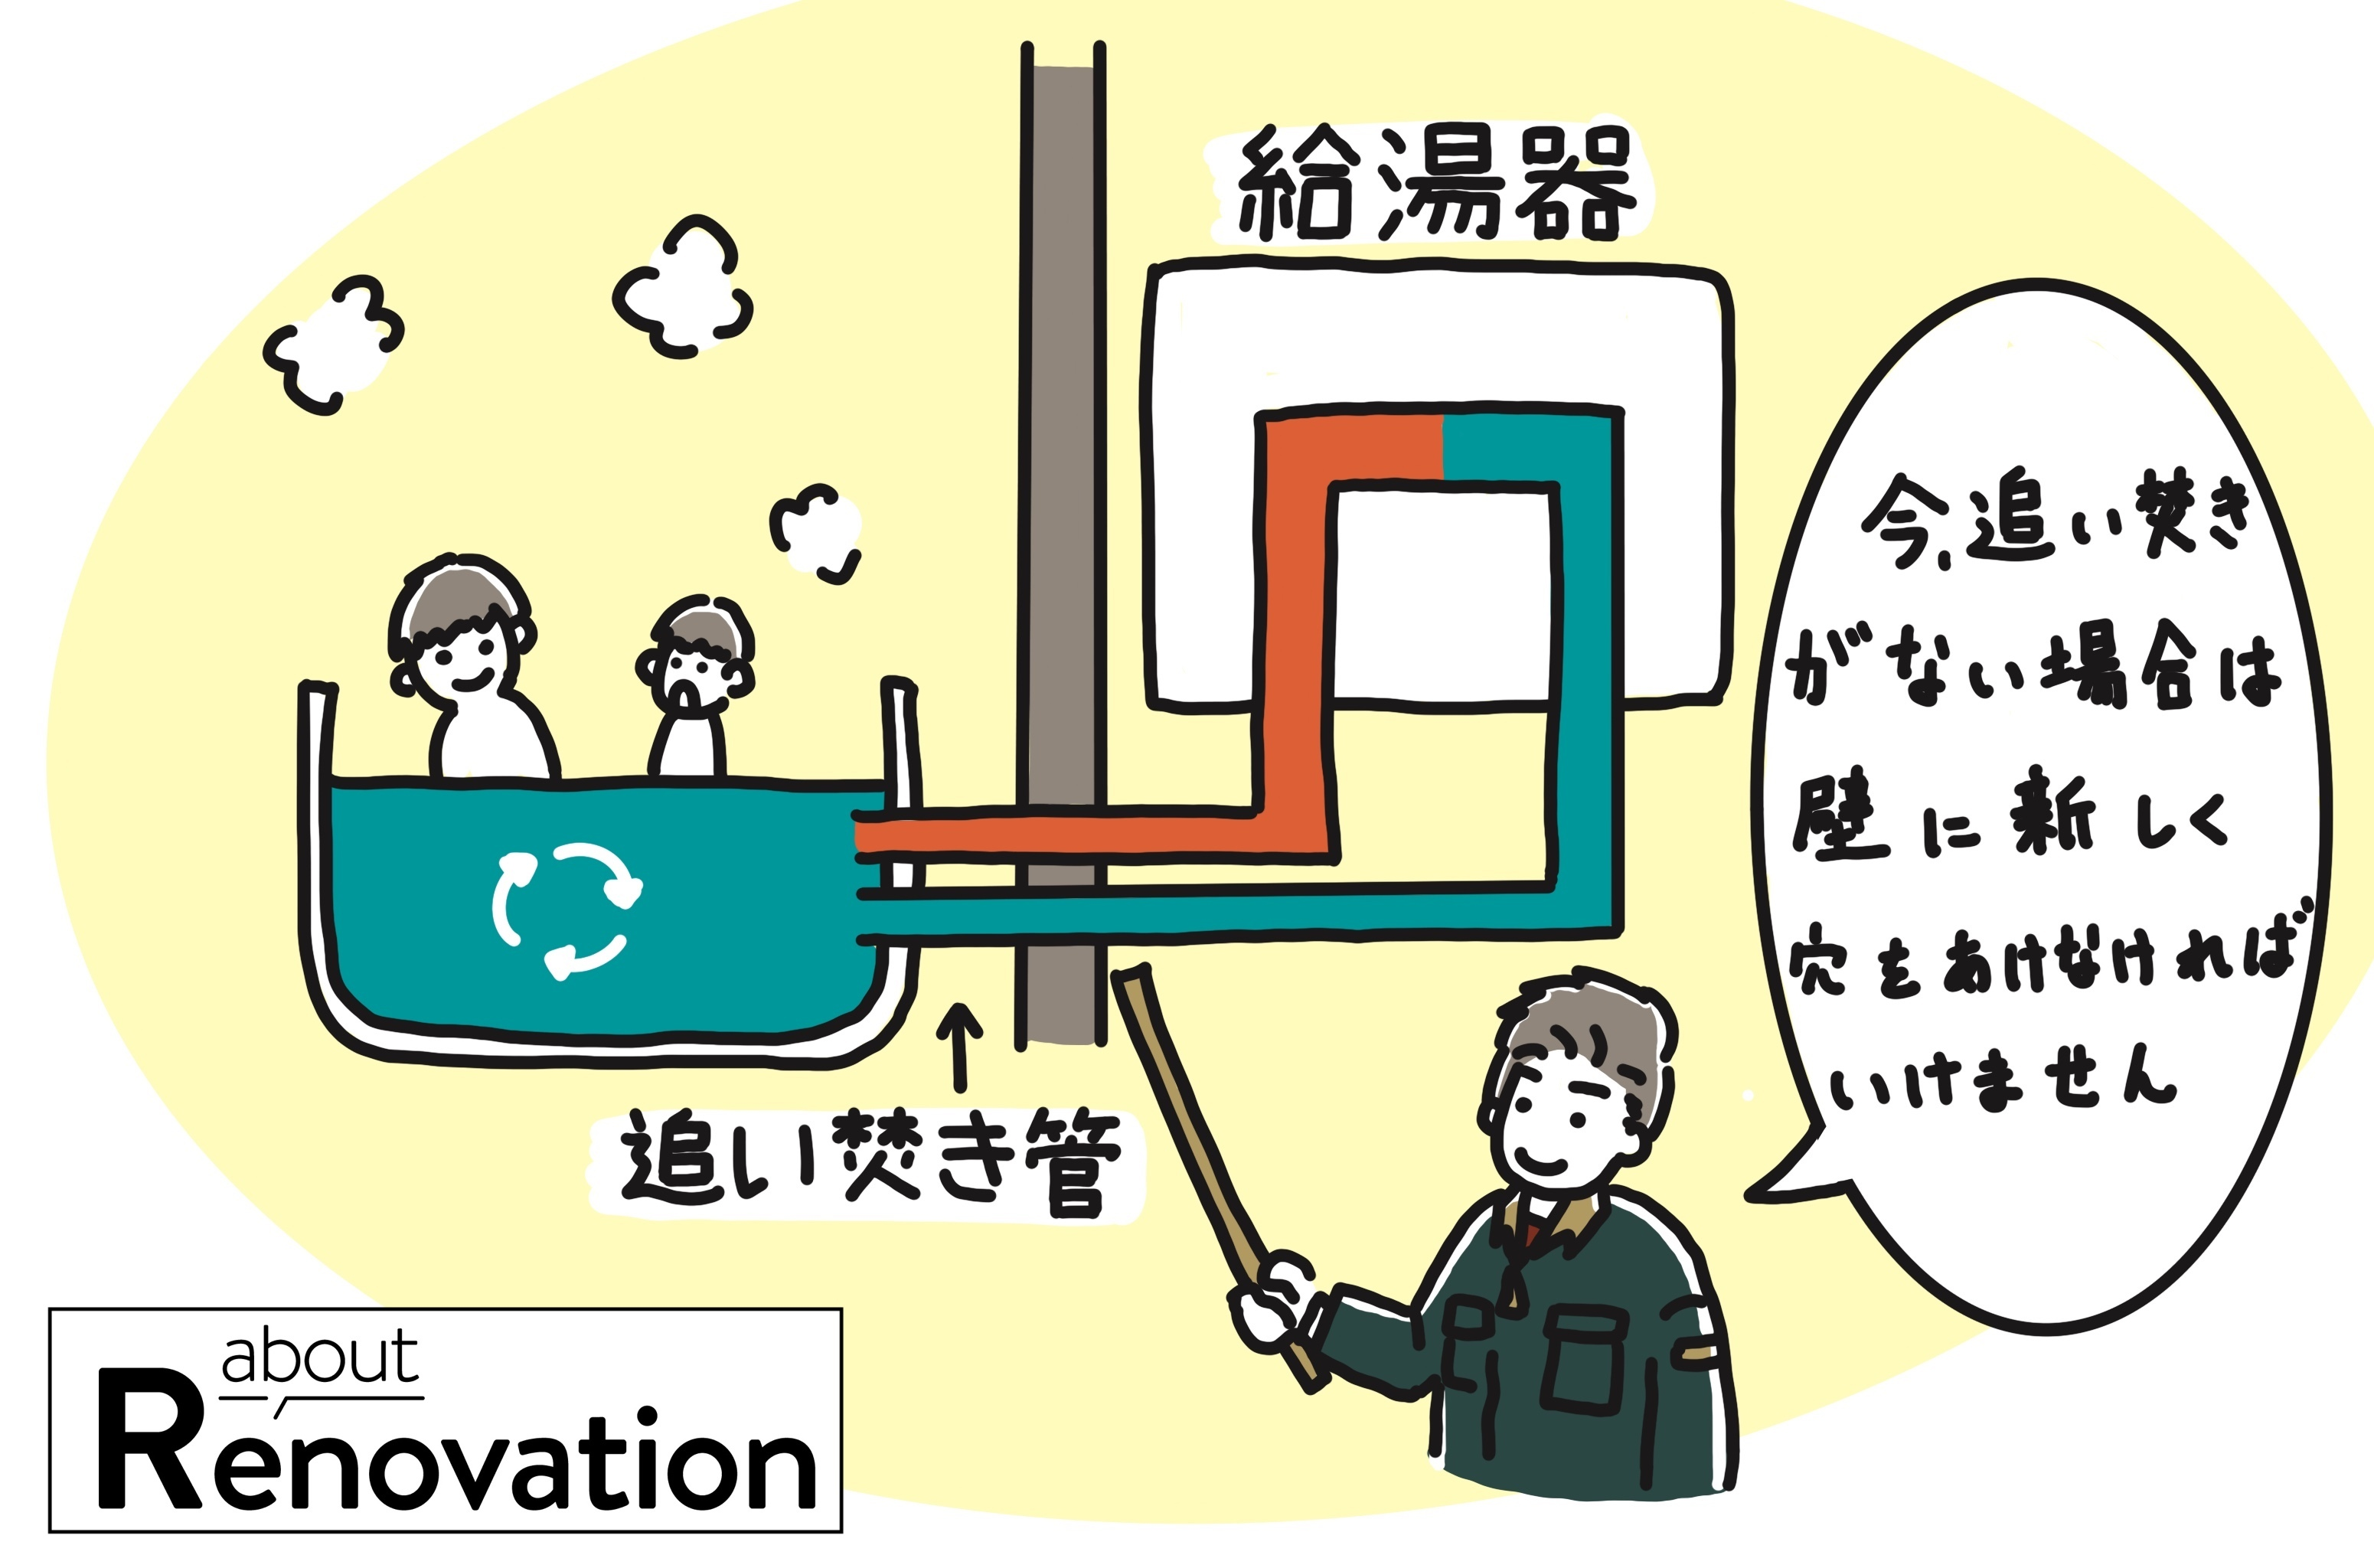 【about Renovation】追い焚きは意外と難しい!?